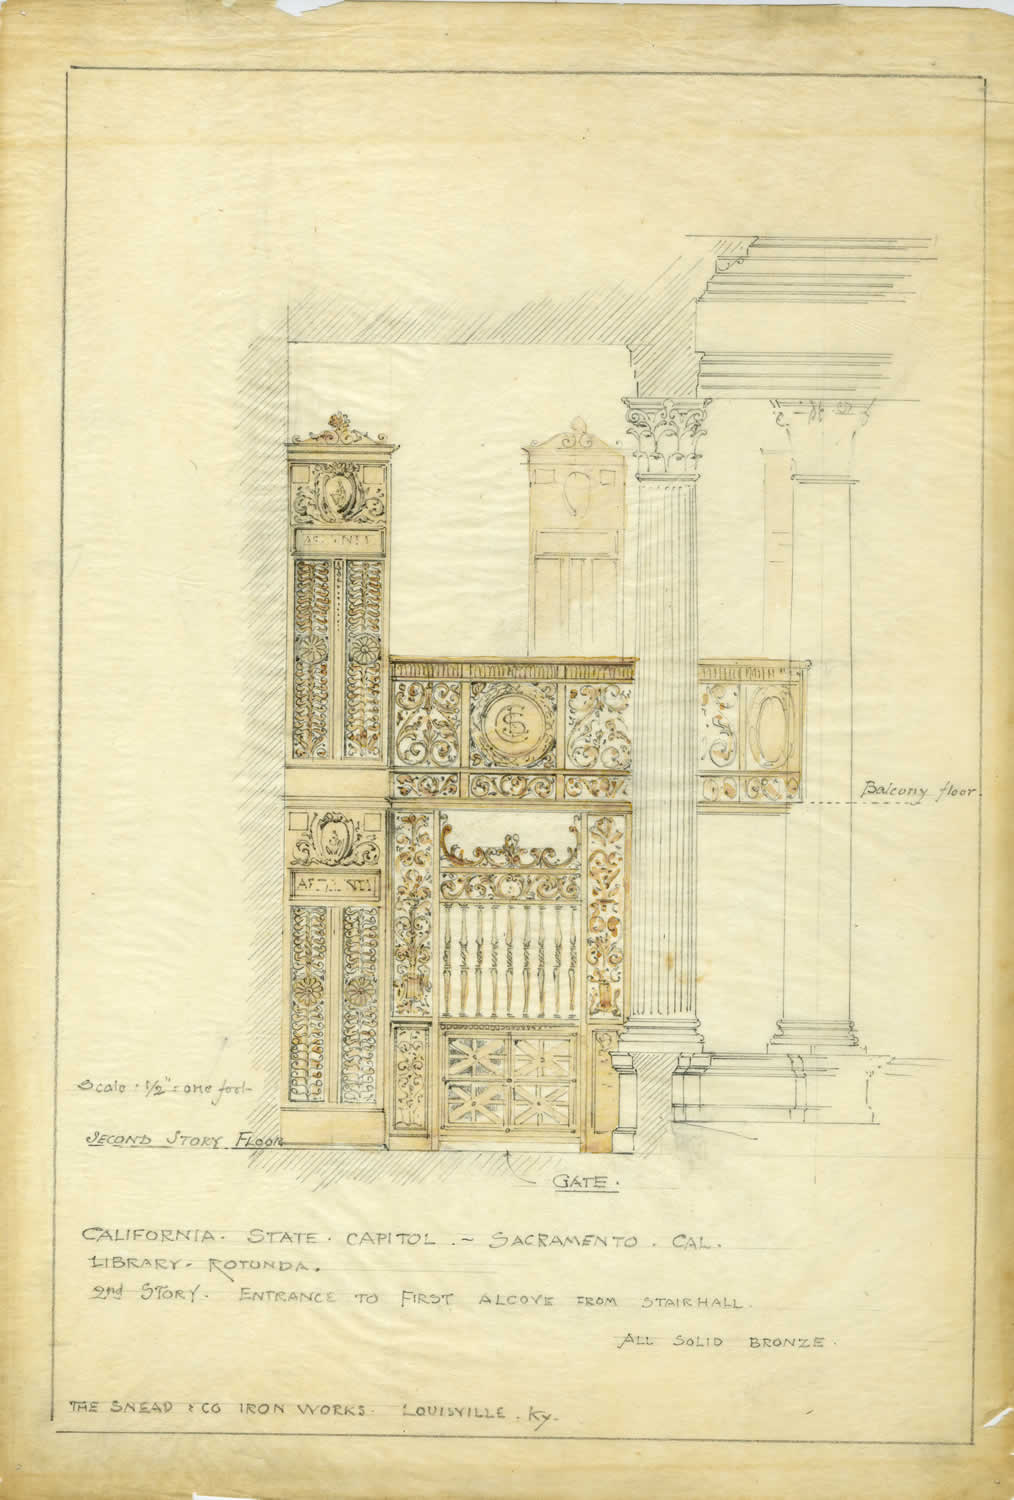 Architect's drawing of the grill work for the entrance to the State Library in the Capitol, c.1892